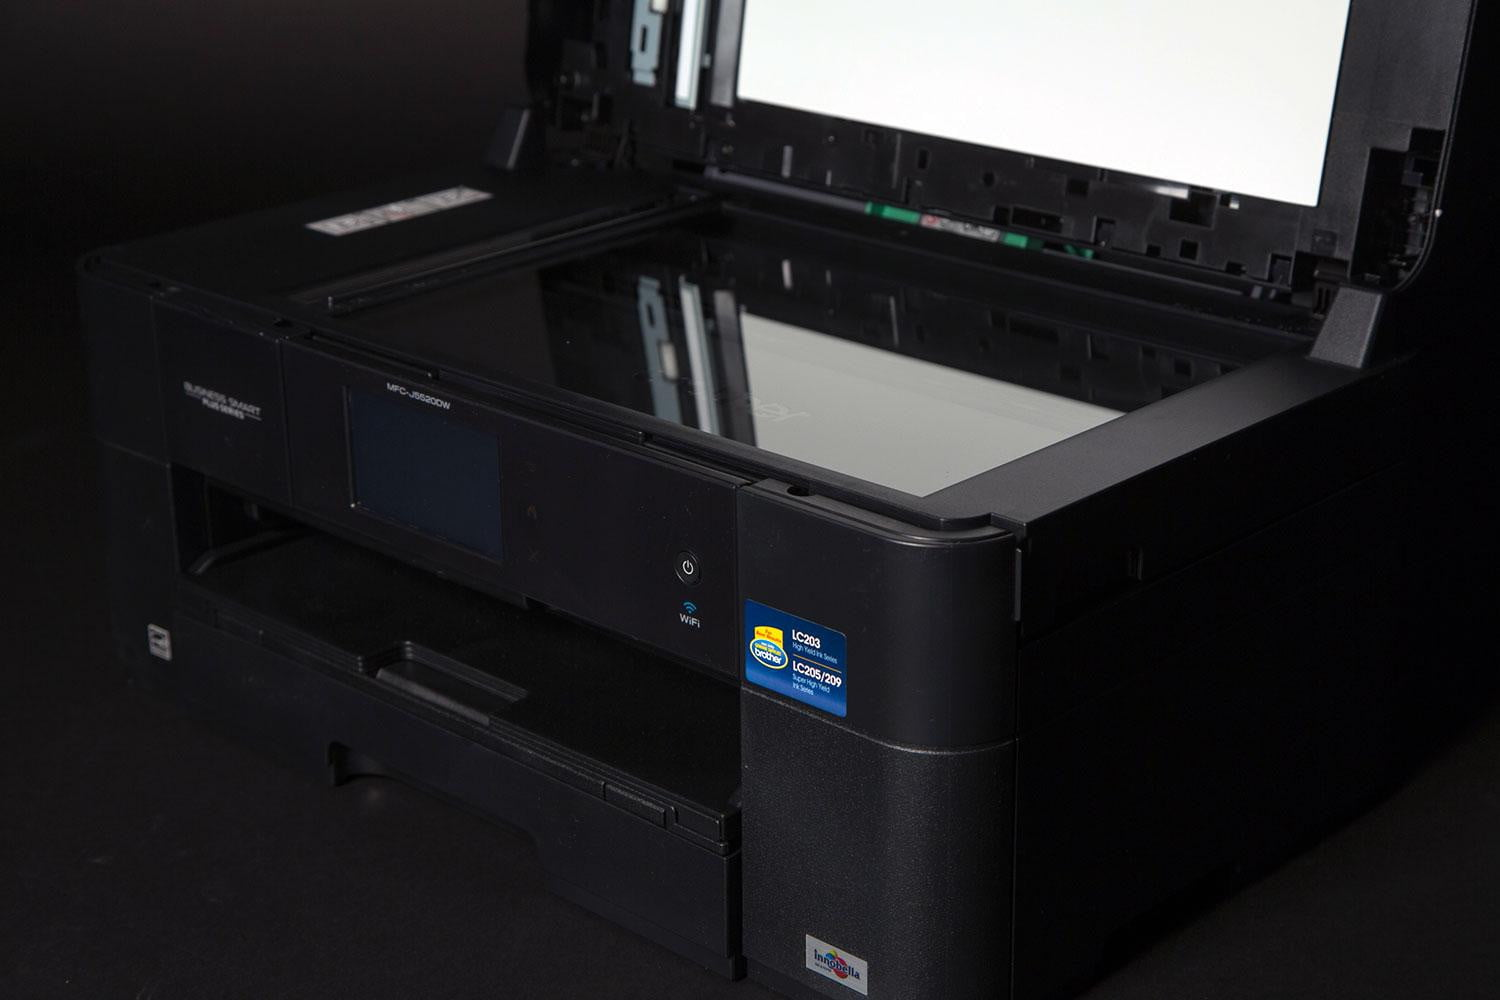 Brother Business Smart MFC-J5520DW All-in-One Printer Review